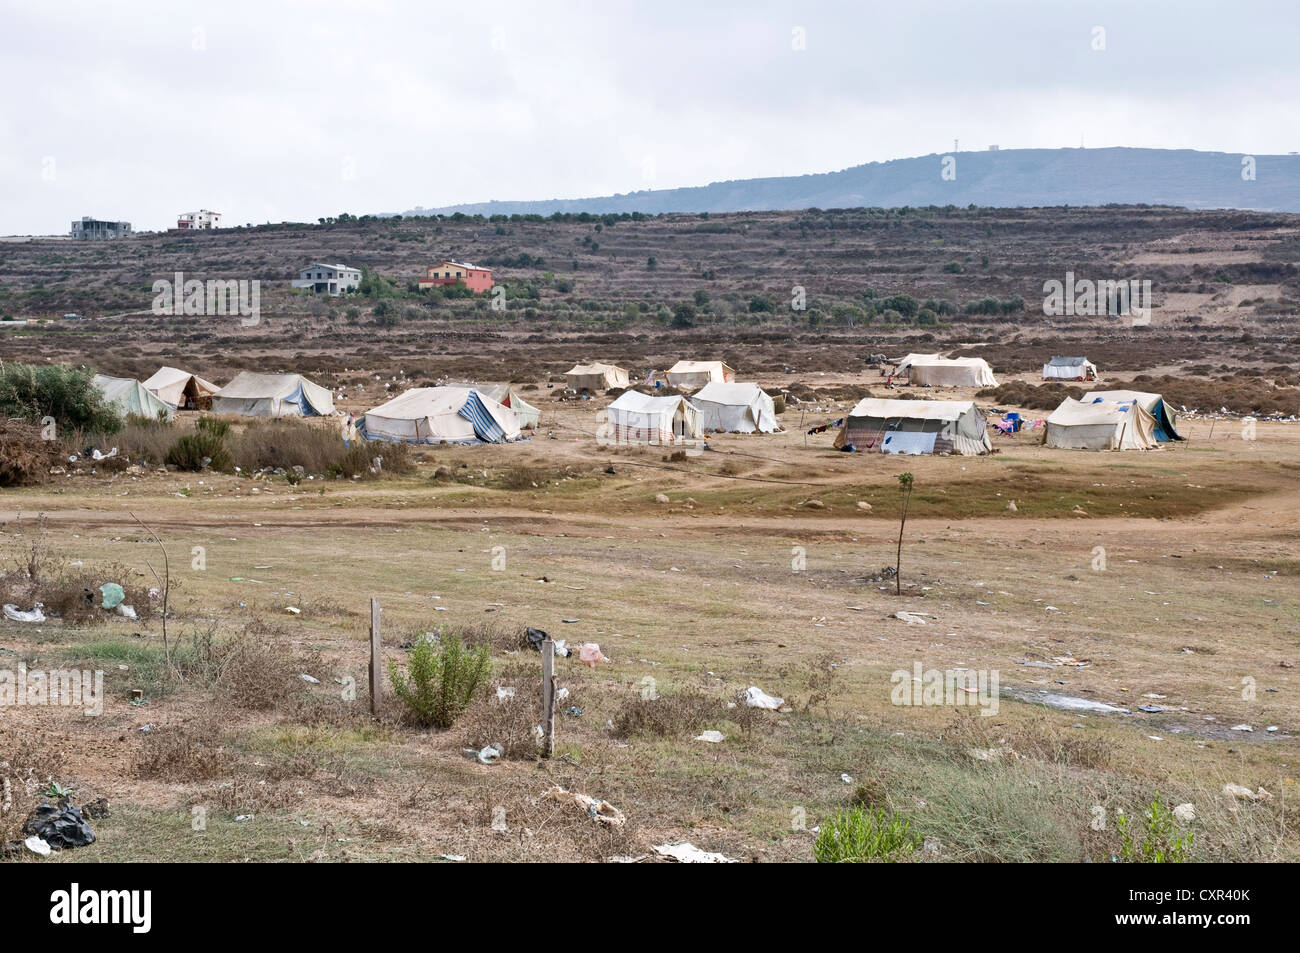 A tent refugee camp for Syrian migrants in the northern Lebanese region of Wadi Khaled, just south of the Syria Stock Photo